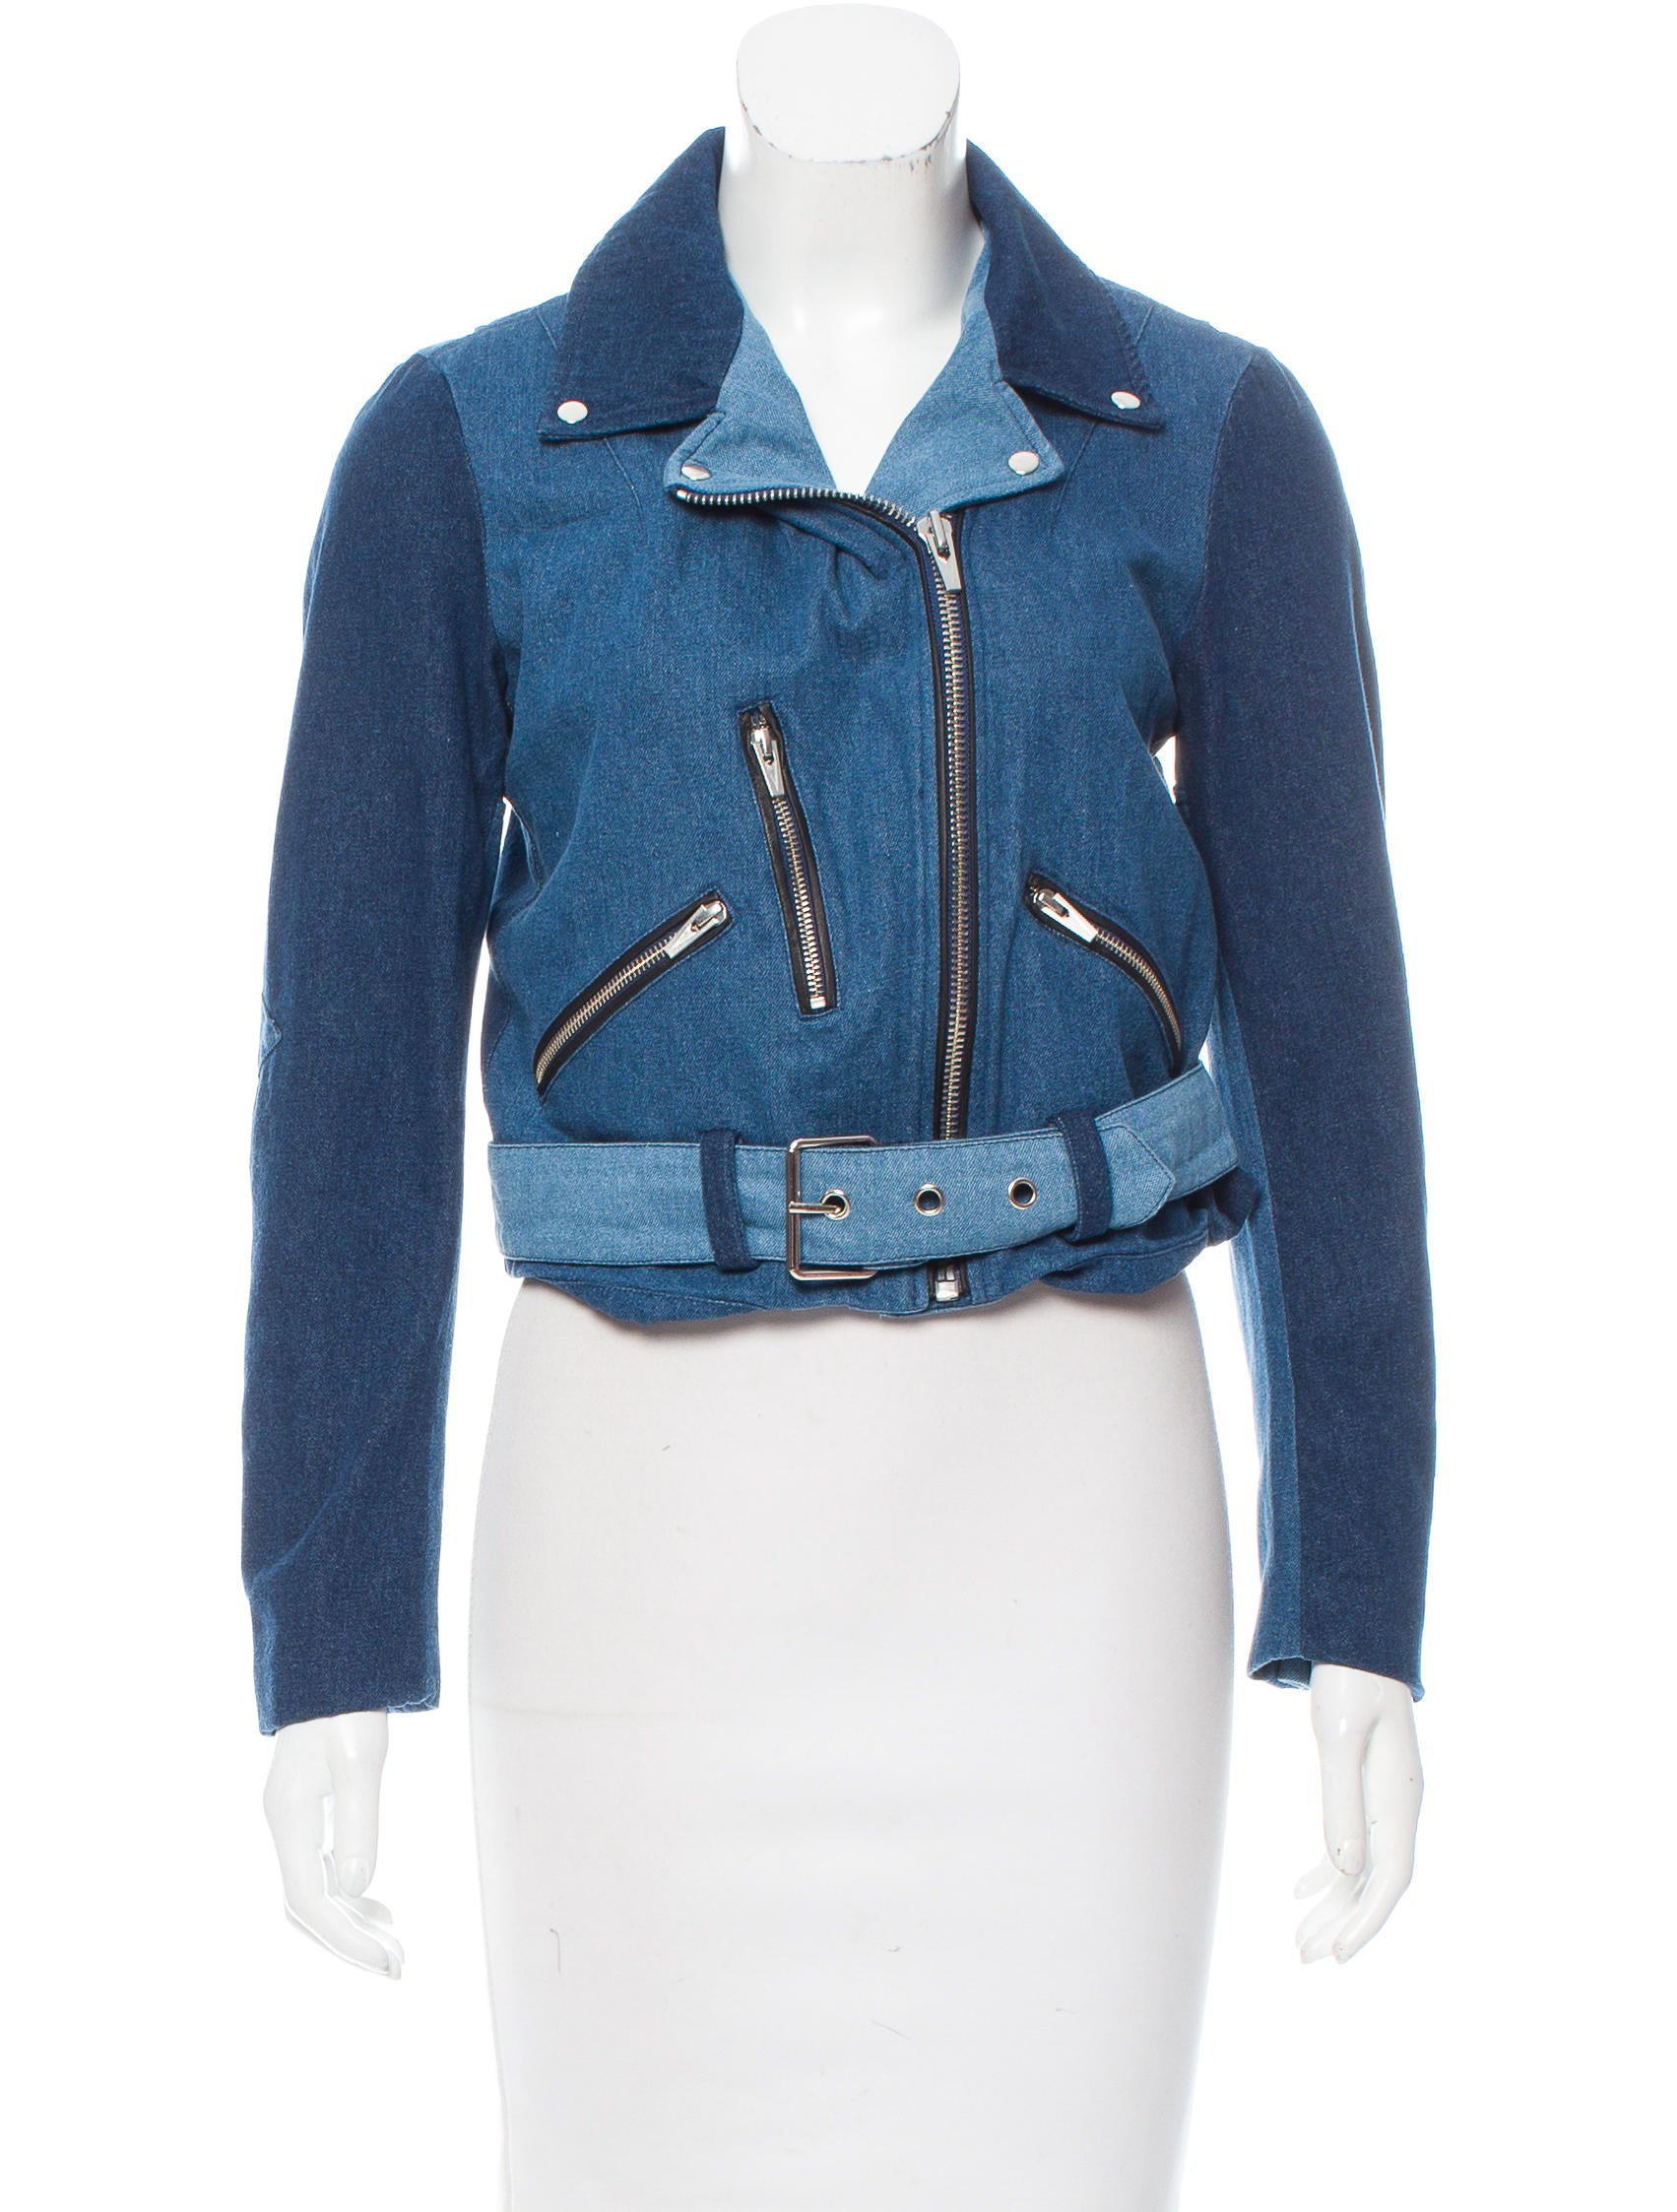 Find great deals on eBay for denim moto jacket. Shop with confidence.